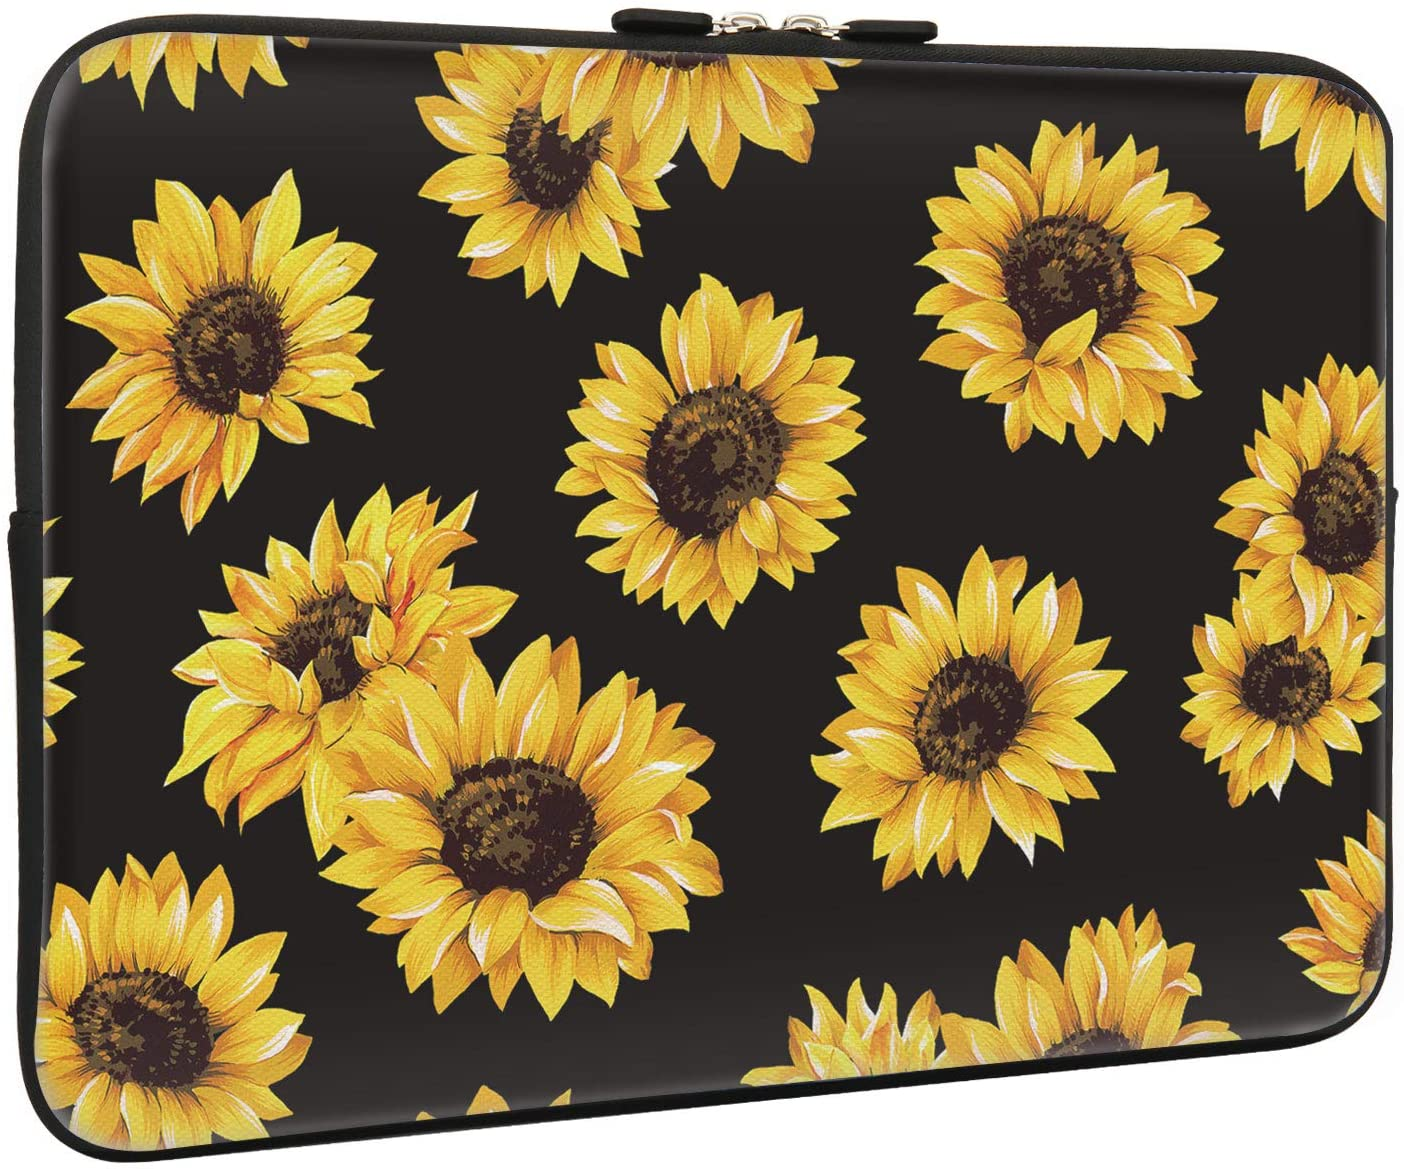 Lapac Sunflower Laptop Sleeve Bag 15-15.6 Inch, Water Repellent Neoprene Light Weight Computer Skin Bag, Notebook Carrying Case Cover Bags for 15/15.4/16 Inch MacBook Pro, MacBook Air, Computer Bag